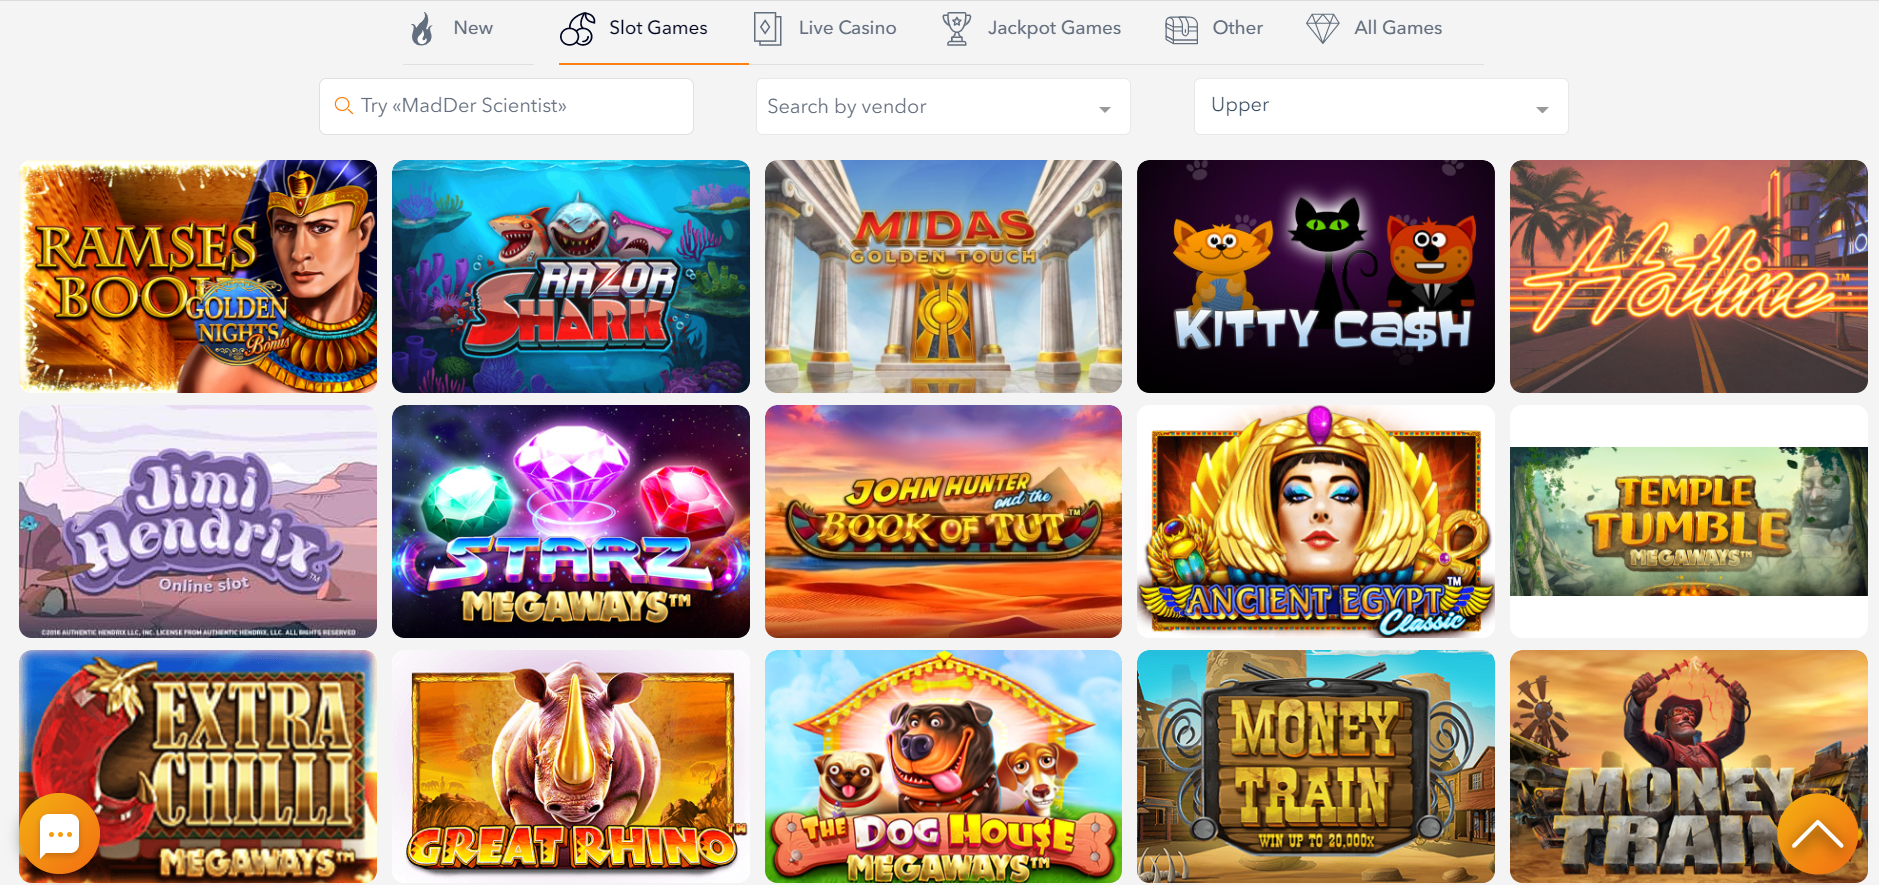 FipperFlip Casino Review 2020 – Bonus up to €100 + 100 Free Spins! | GoodLuckMate